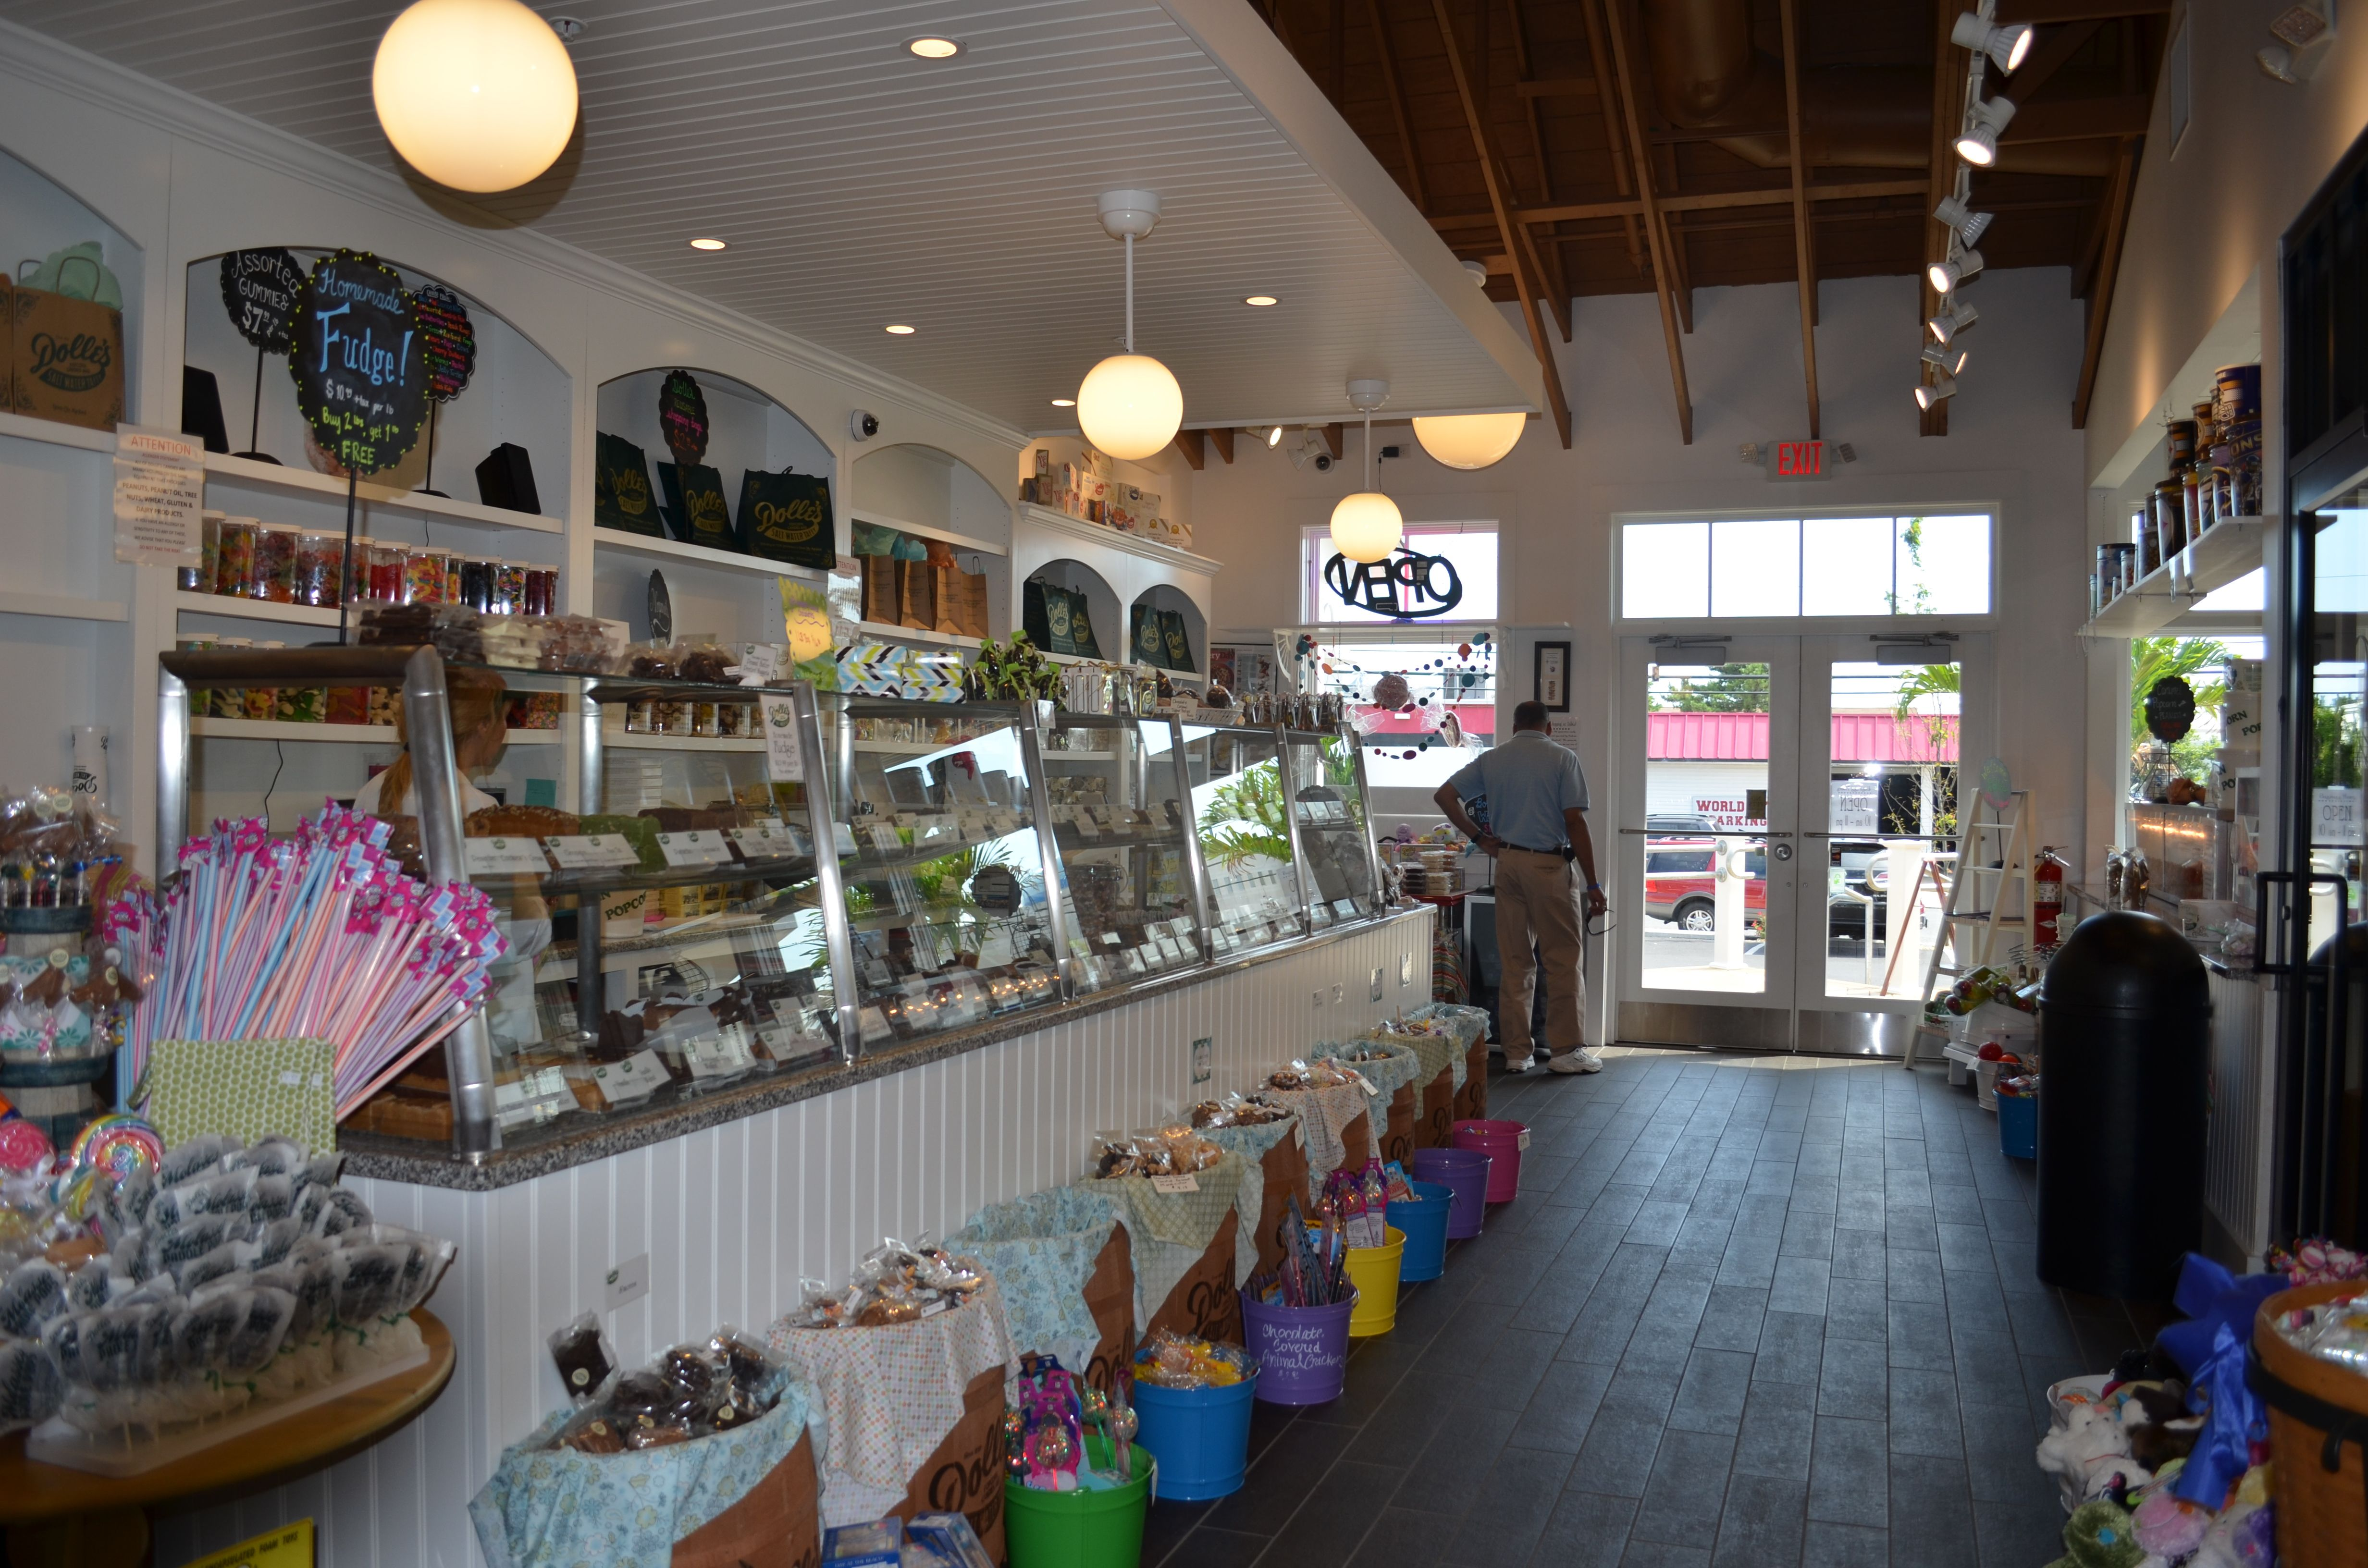 A candy store and history lesson all rolled into one little area!  Come see!